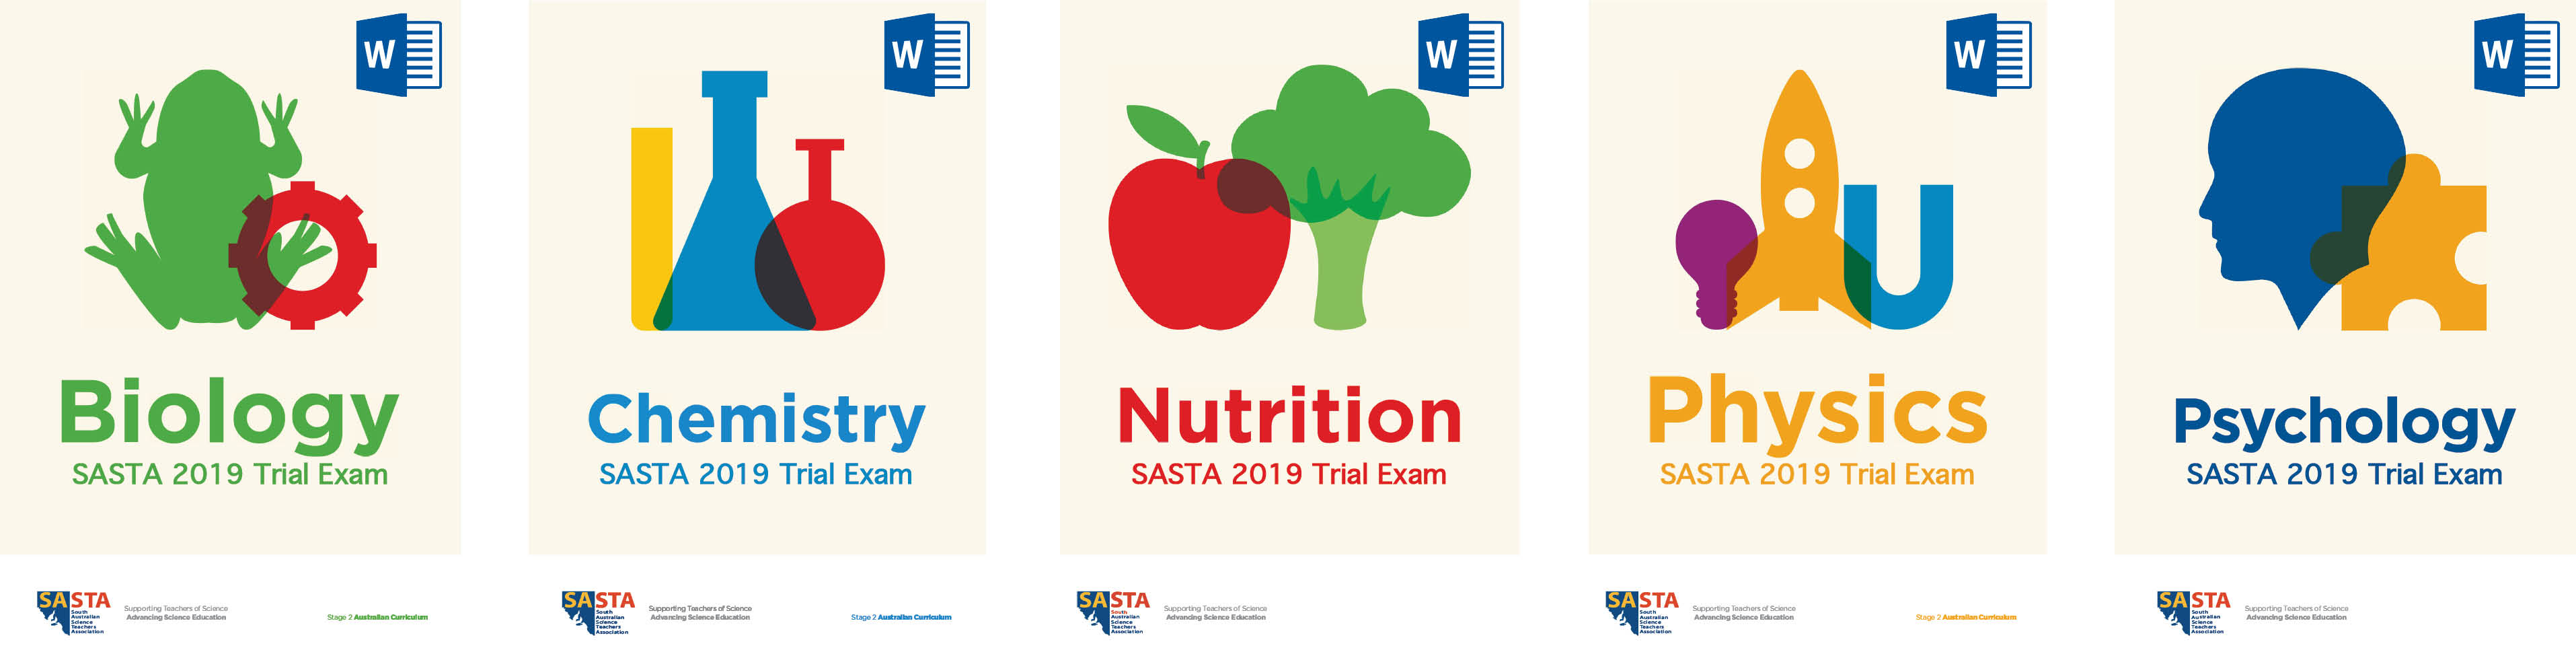 Stage 2 Trial Exam Covers